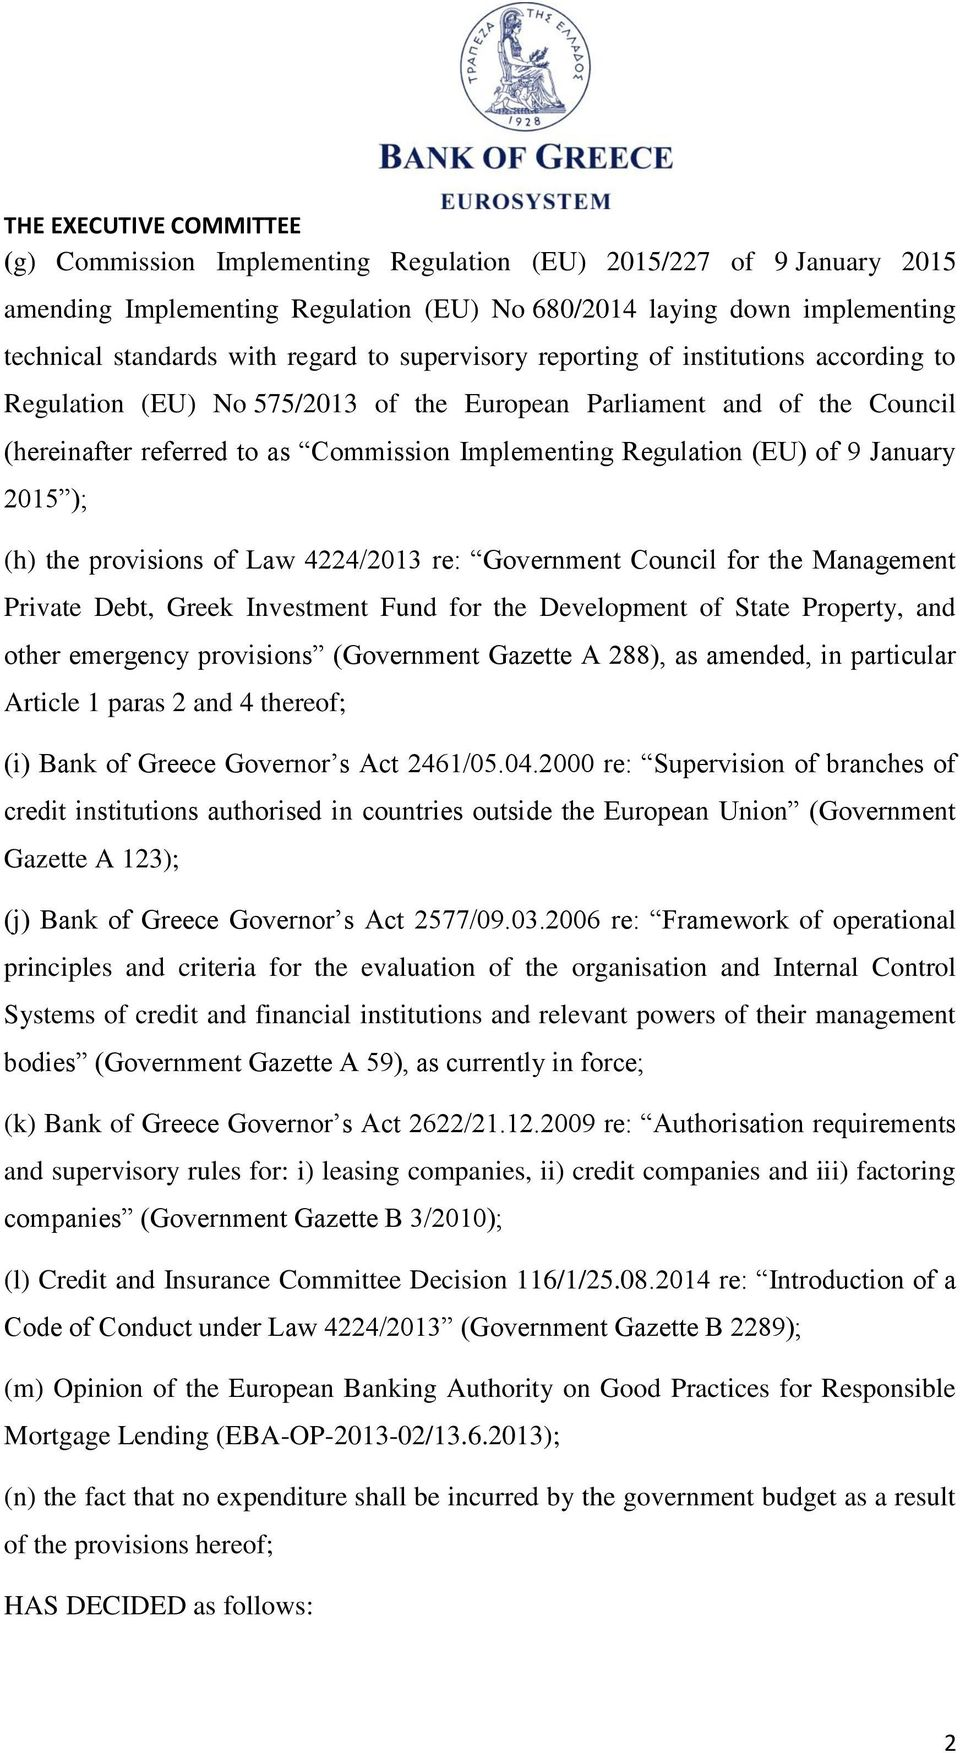 provisions of Law 4224/2013 re: Government Council for the Management Private Debt, Greek Investment Fund for the Development of State Property, and other emergency provisions (Government Gazette A